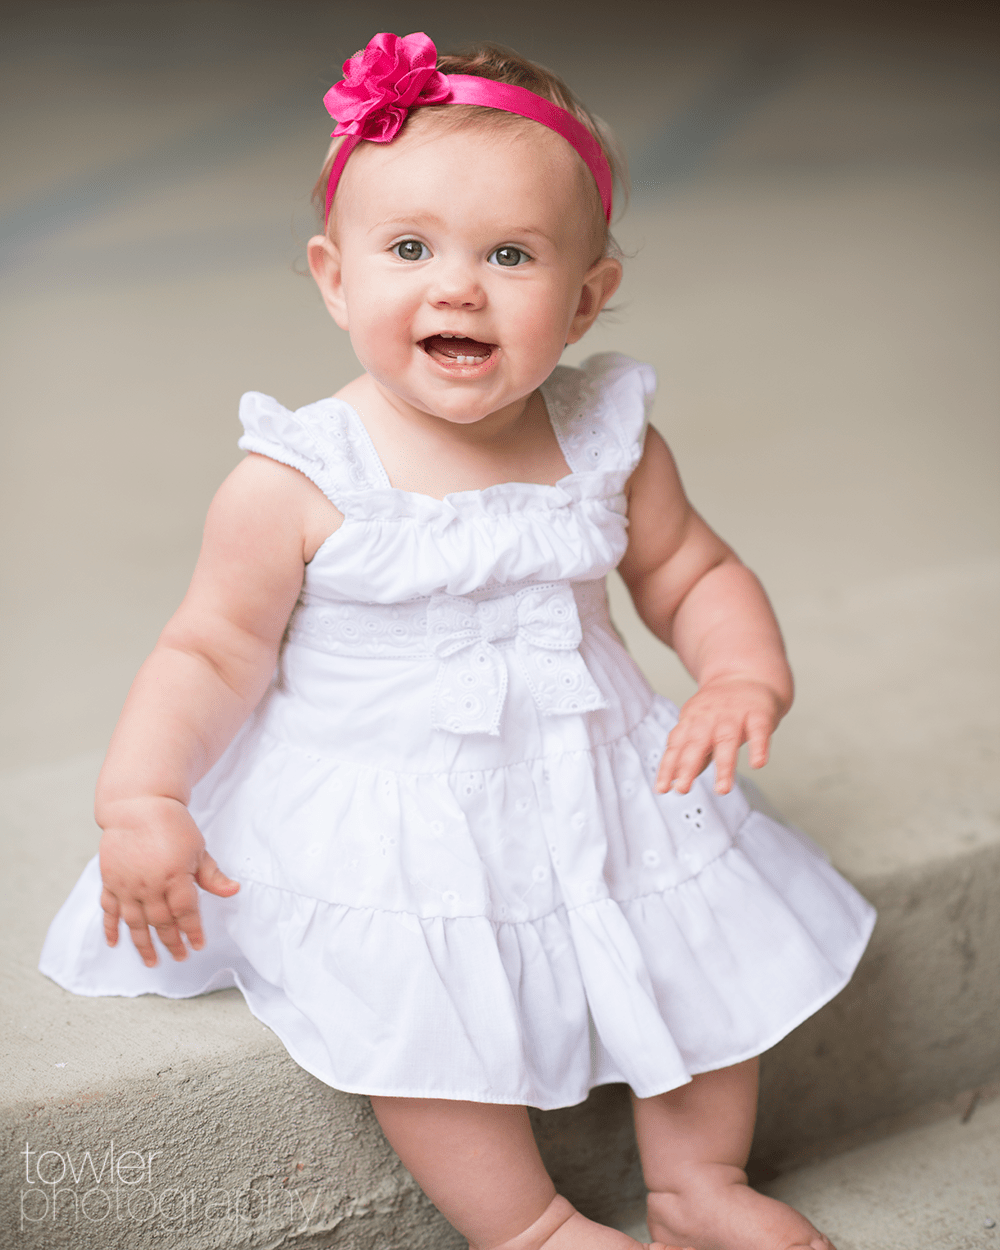 TowlerPhotography_One_Year_Annie_0252